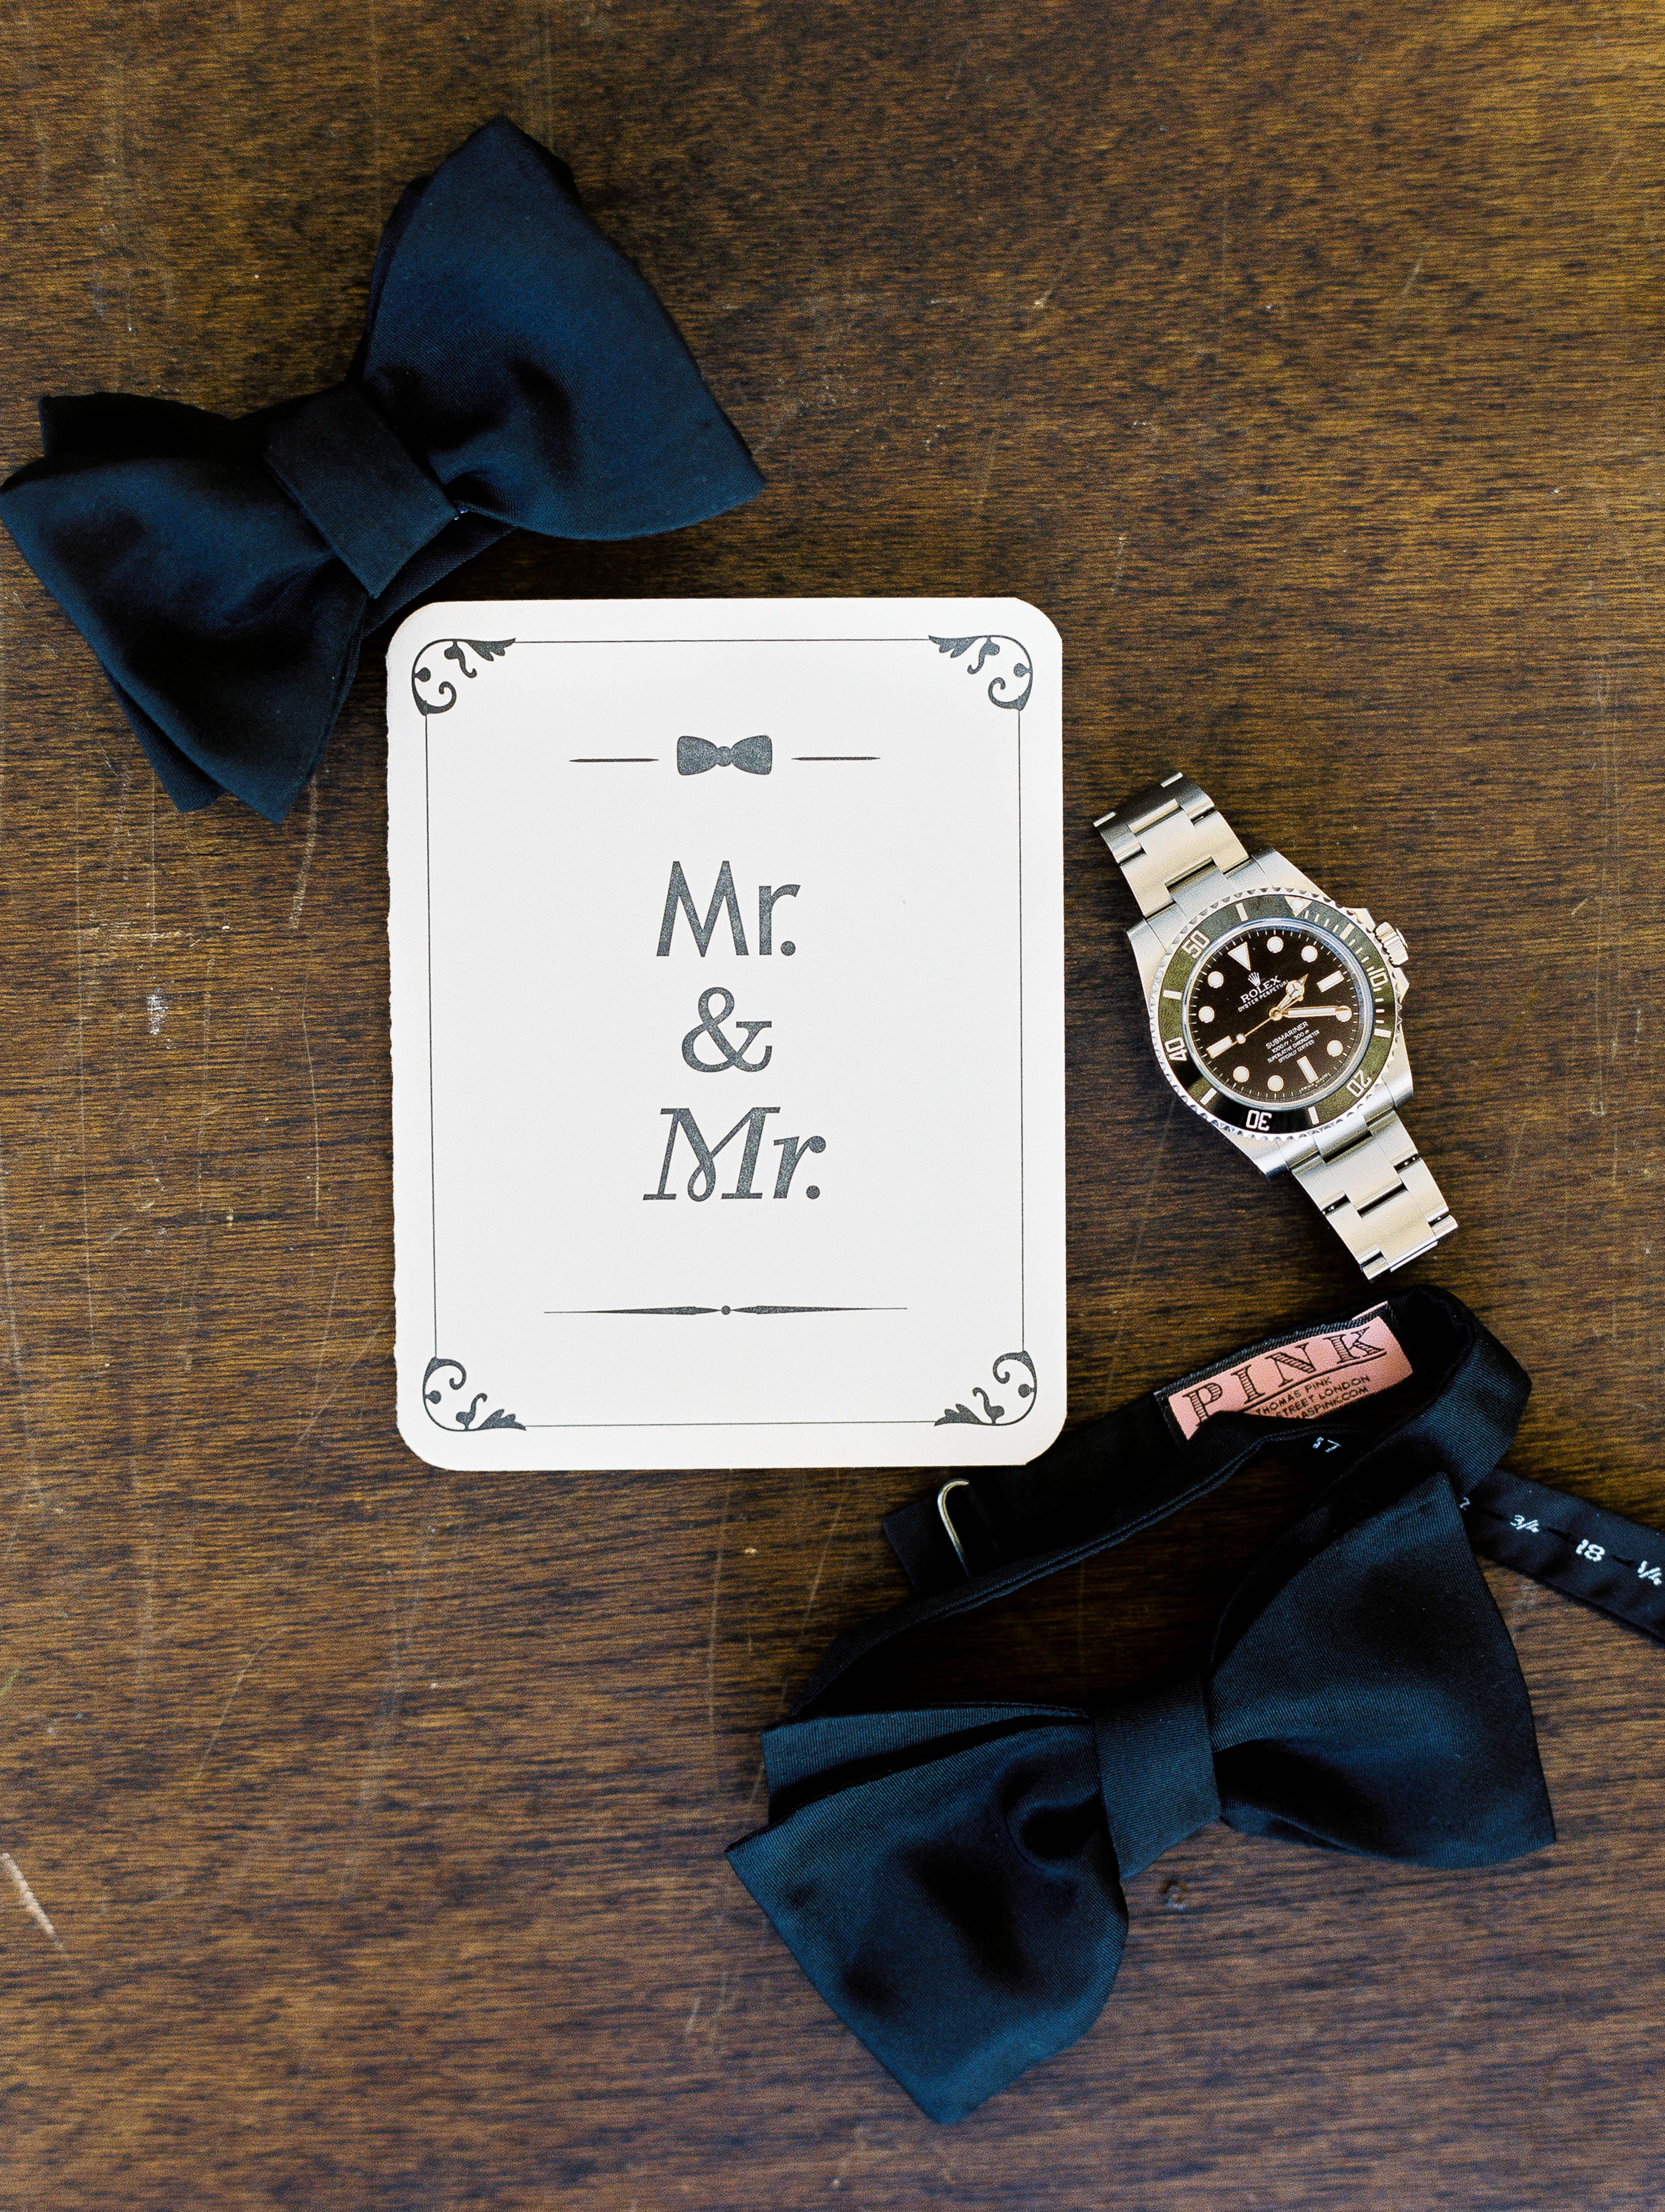 mr and mr classic card sign with blue bow ties